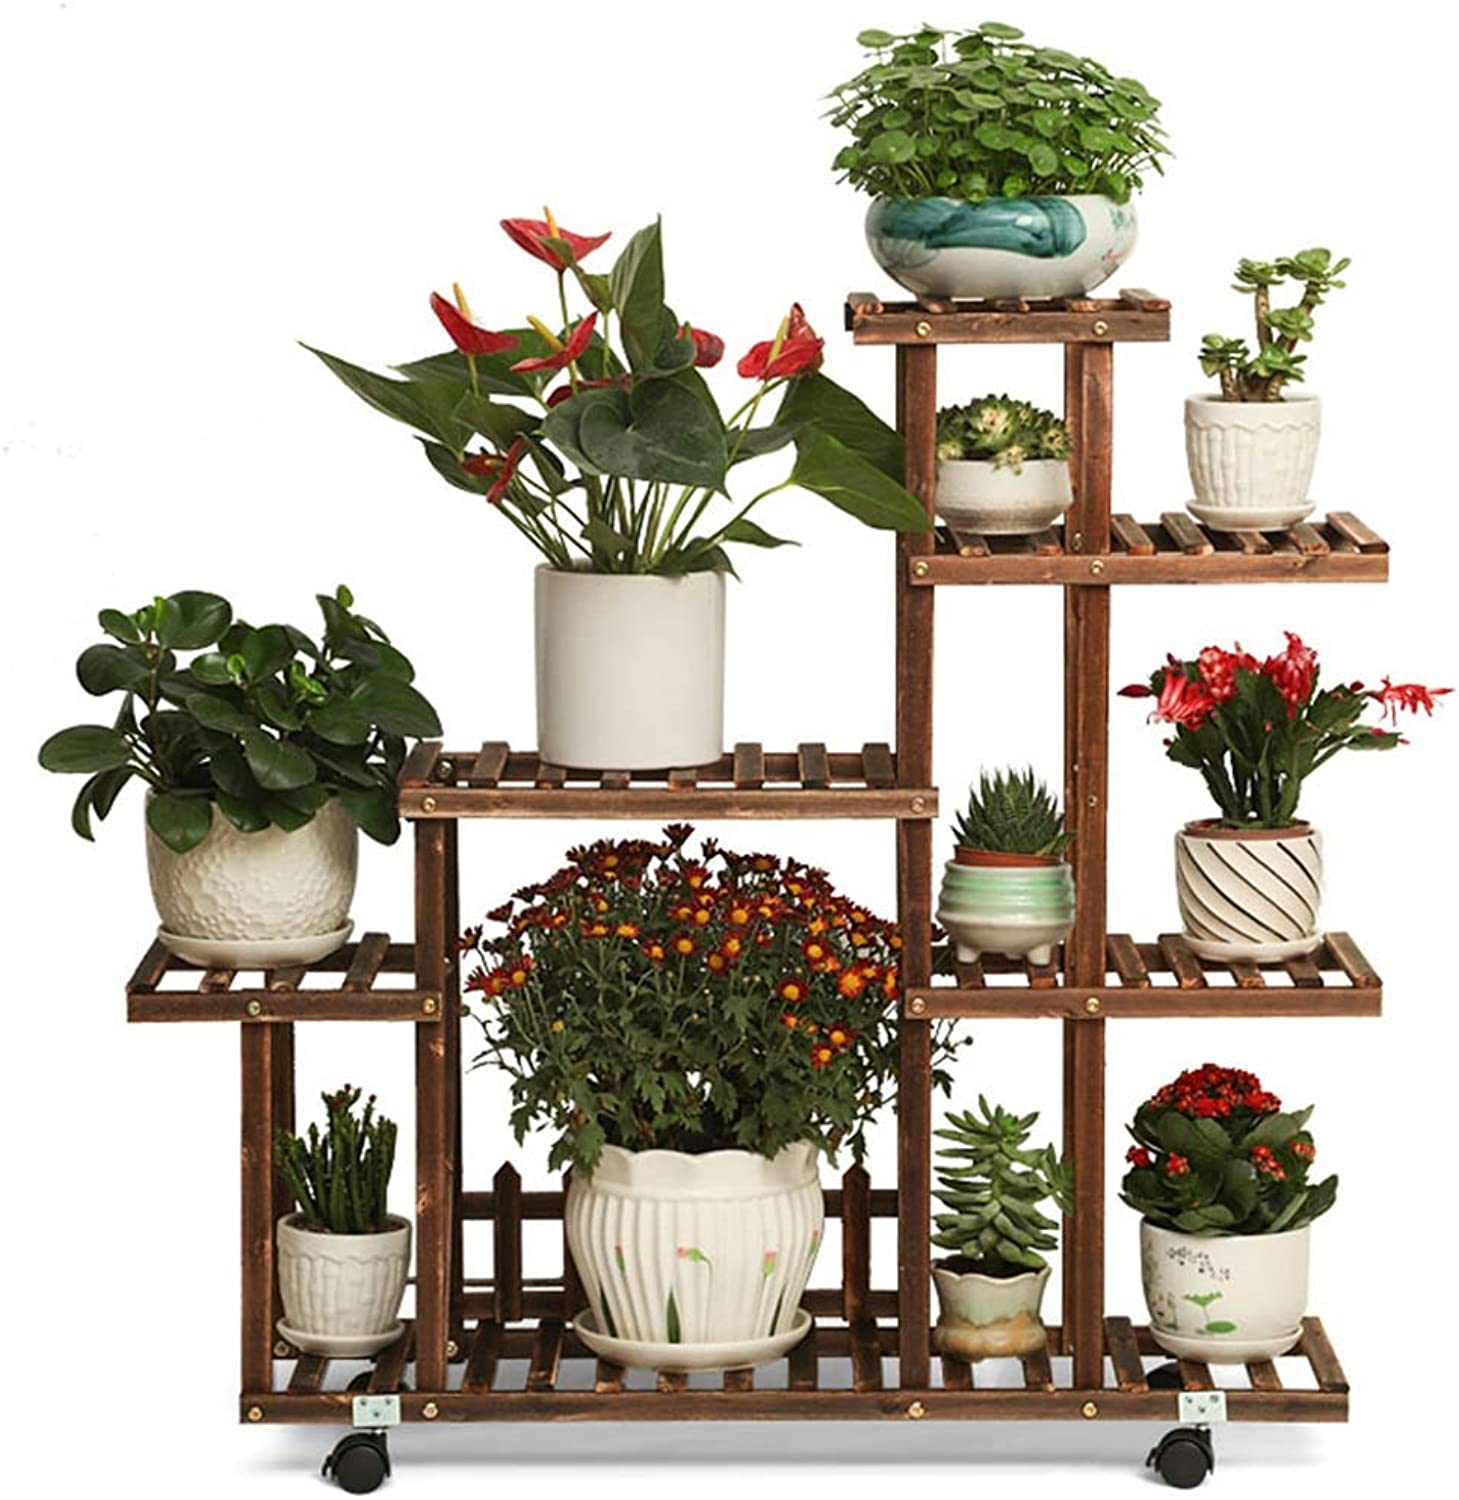 Wooden Plant Racks Indoor and Outdoor Multi-Pot Racks for Stairs Balcony Garden Patio Corner Pots Display Stand Decoration Art